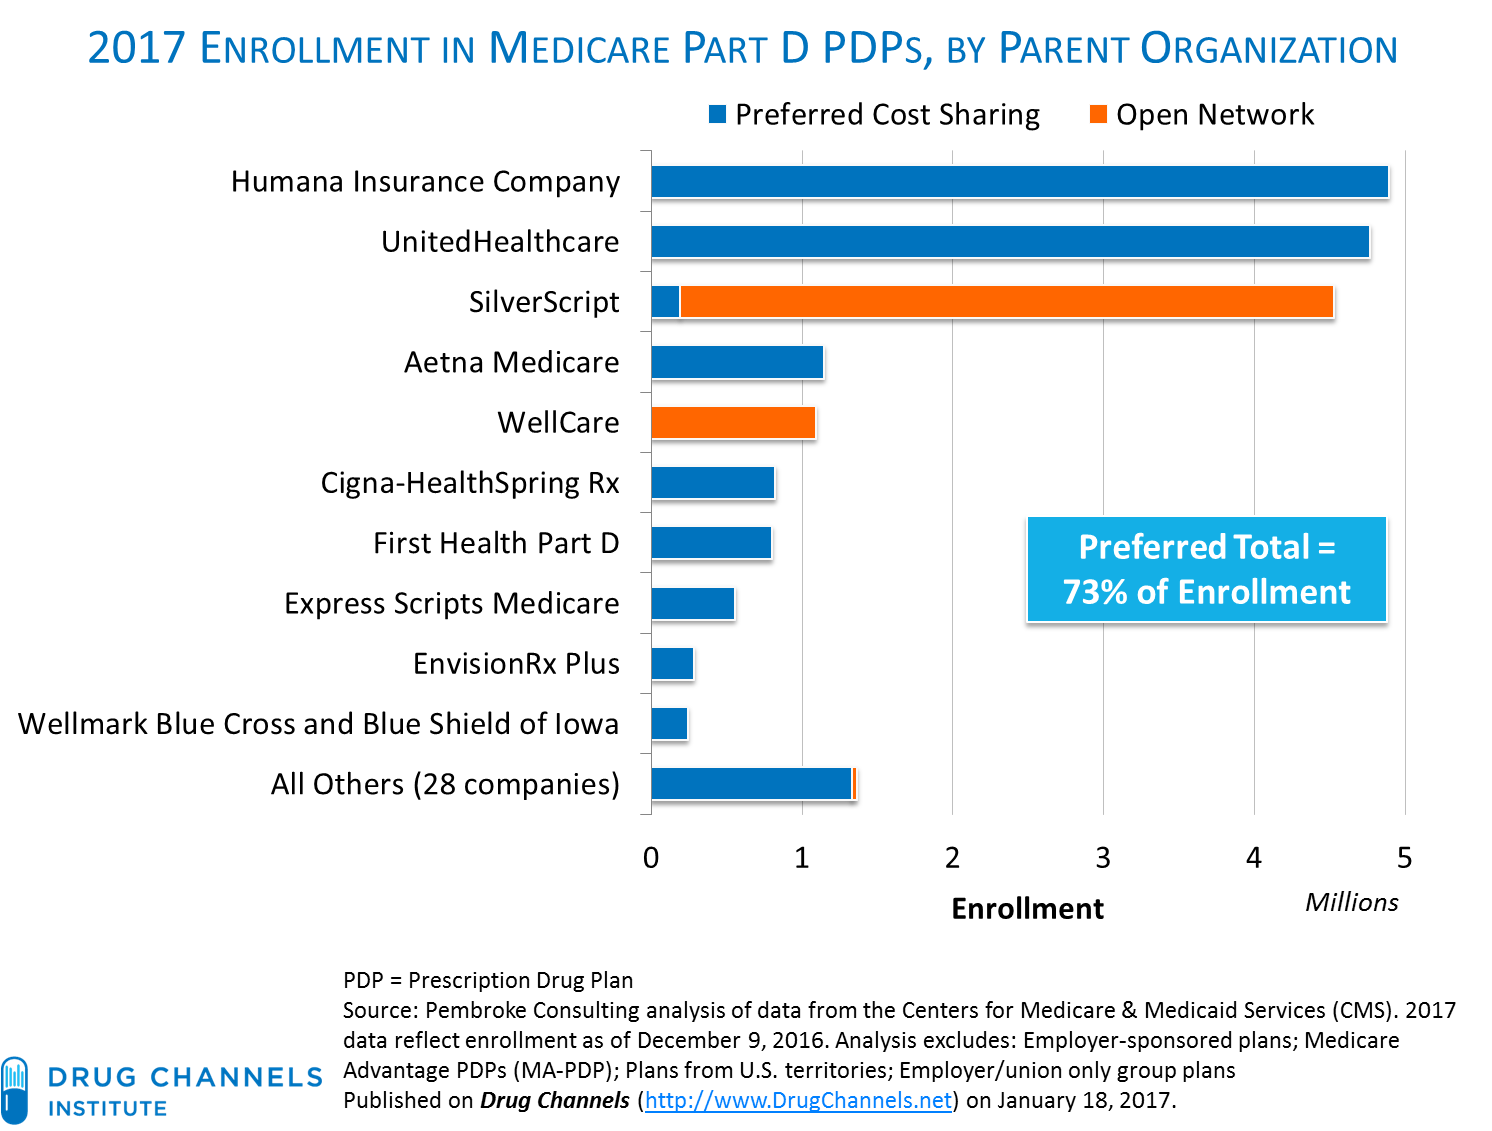 Medicare Part D >> Drug Channels New 2017 Part D Enrollment Data Walgreens And